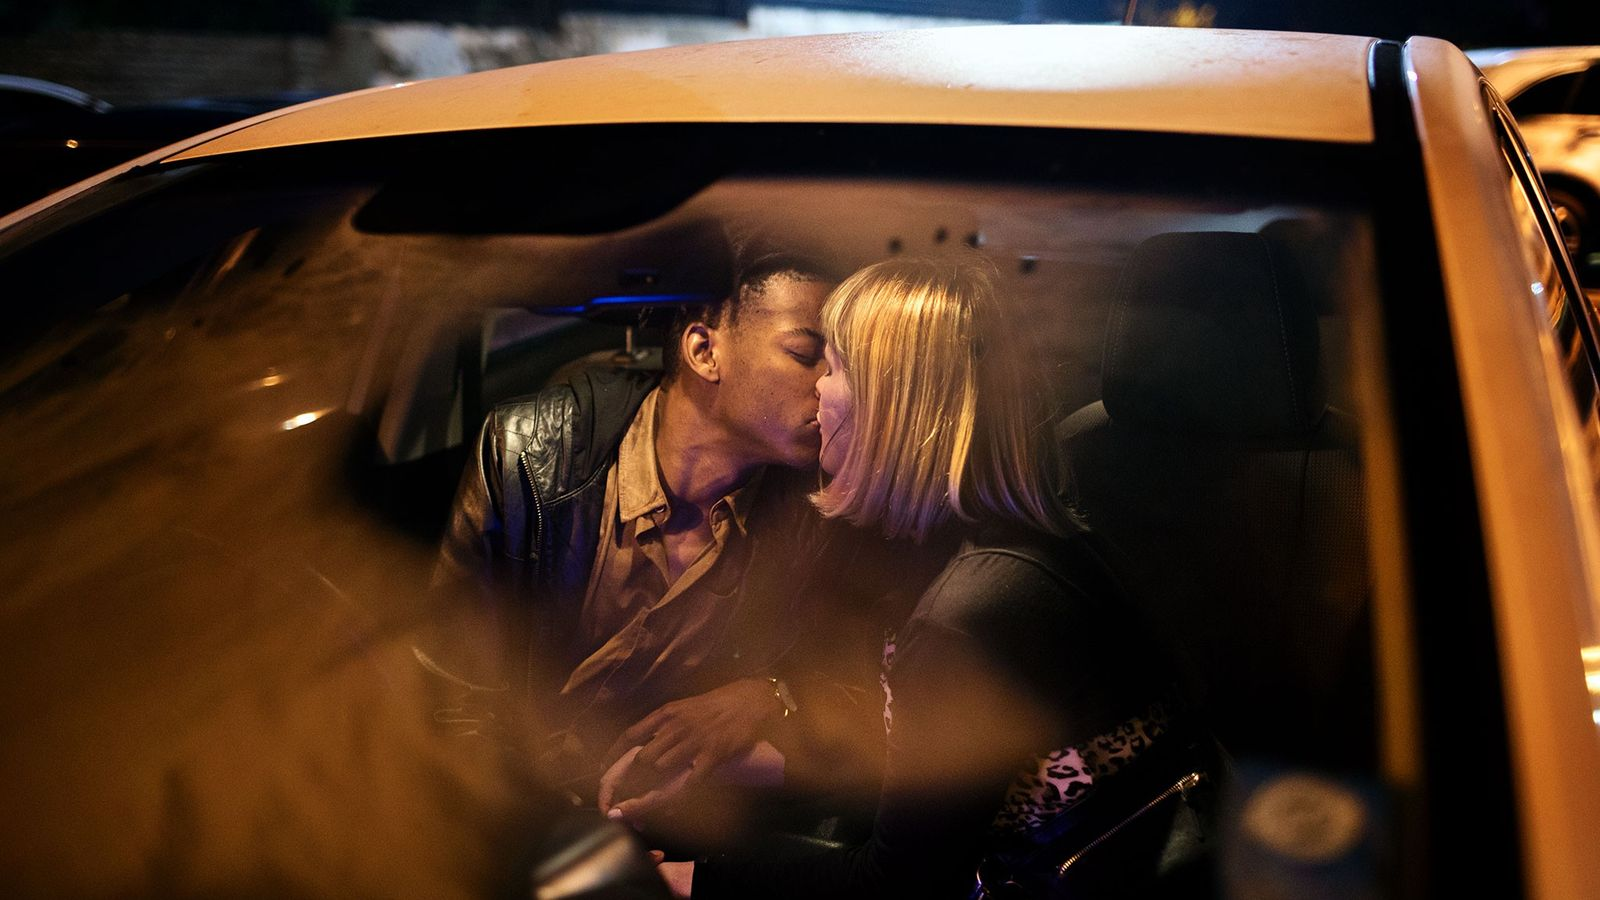 Wilmarie Deetlefs, 24, kisses her boyfriend Zakithi Buthelezi, 27, on a night out in Johannesburg. The ...